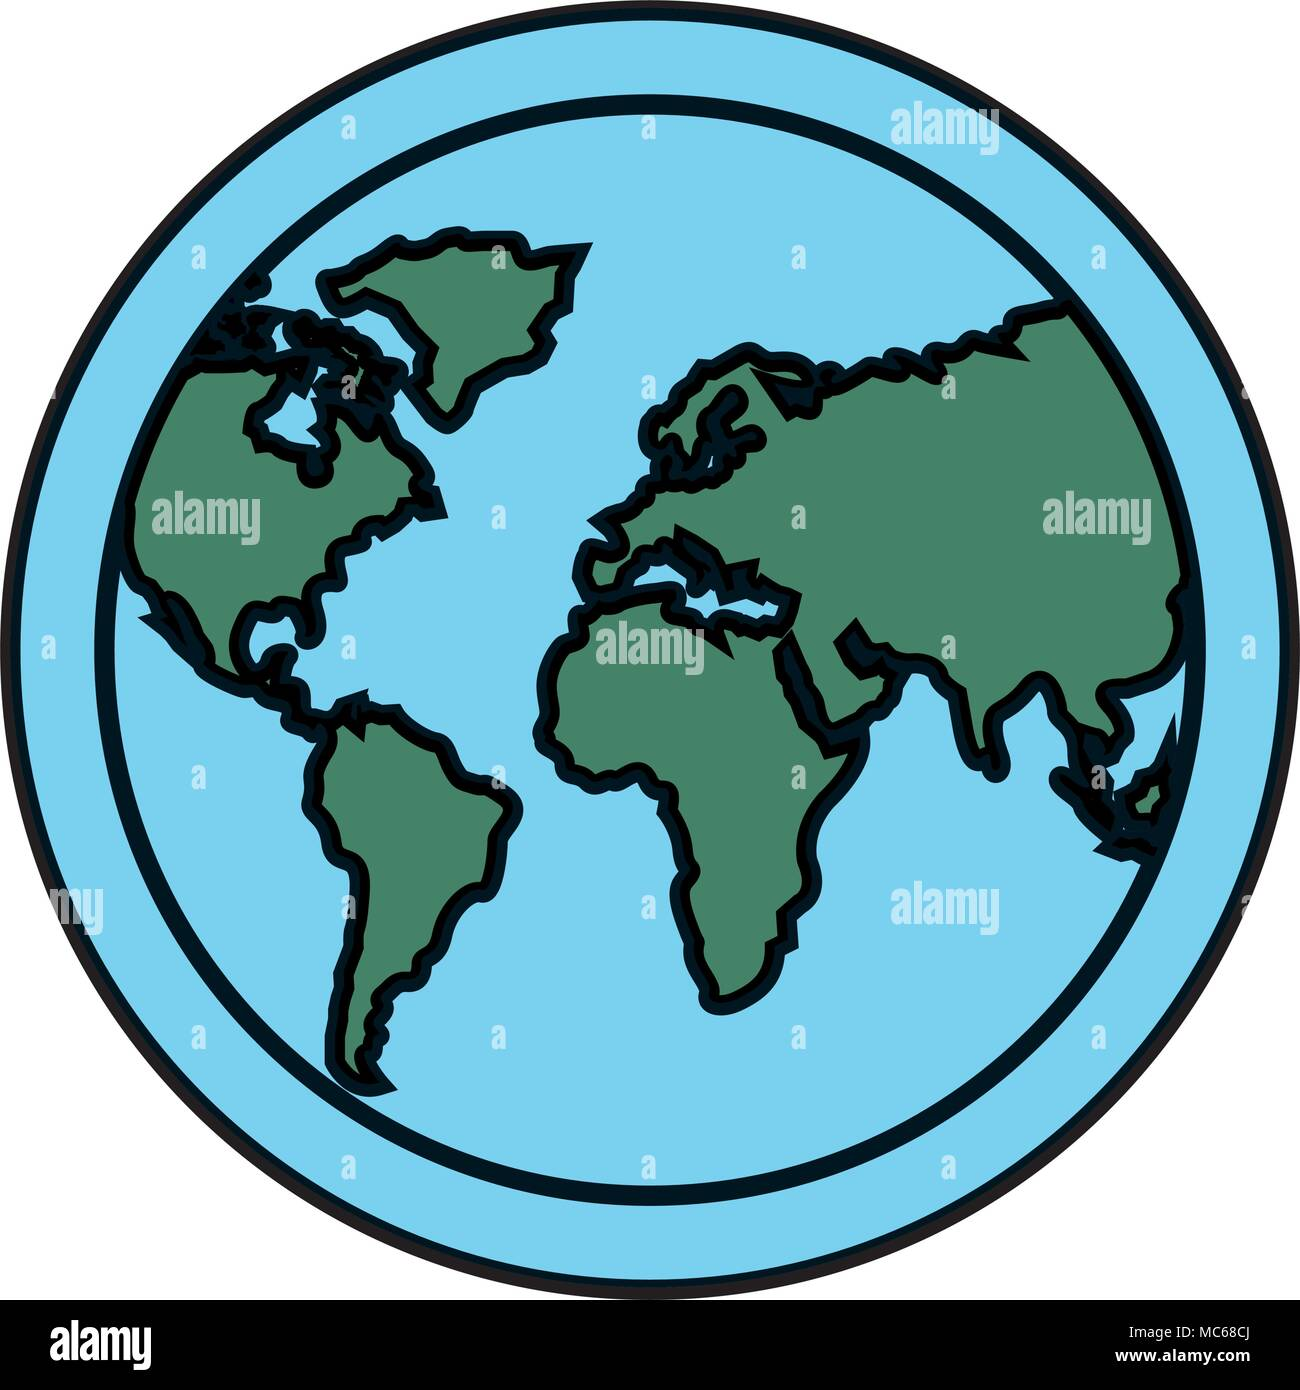 Flat Globe Map Earth Stock Photos & Flat Globe Map Earth Stock ... on scale map of the world, ranger's apprentice map of the world, full map of the world, white map of the world, physical features map of the world, climate zone map of the world, satellite map of the world, american map of the world, true size map of the world, bathymetric map of the world, cool map of the world, travel map of the world, game of thrones map of the world, current map of the world, basic map of the world, elder scrolls map of the world, peters projection map of the world, entire map of the world, new yorker map of the world,